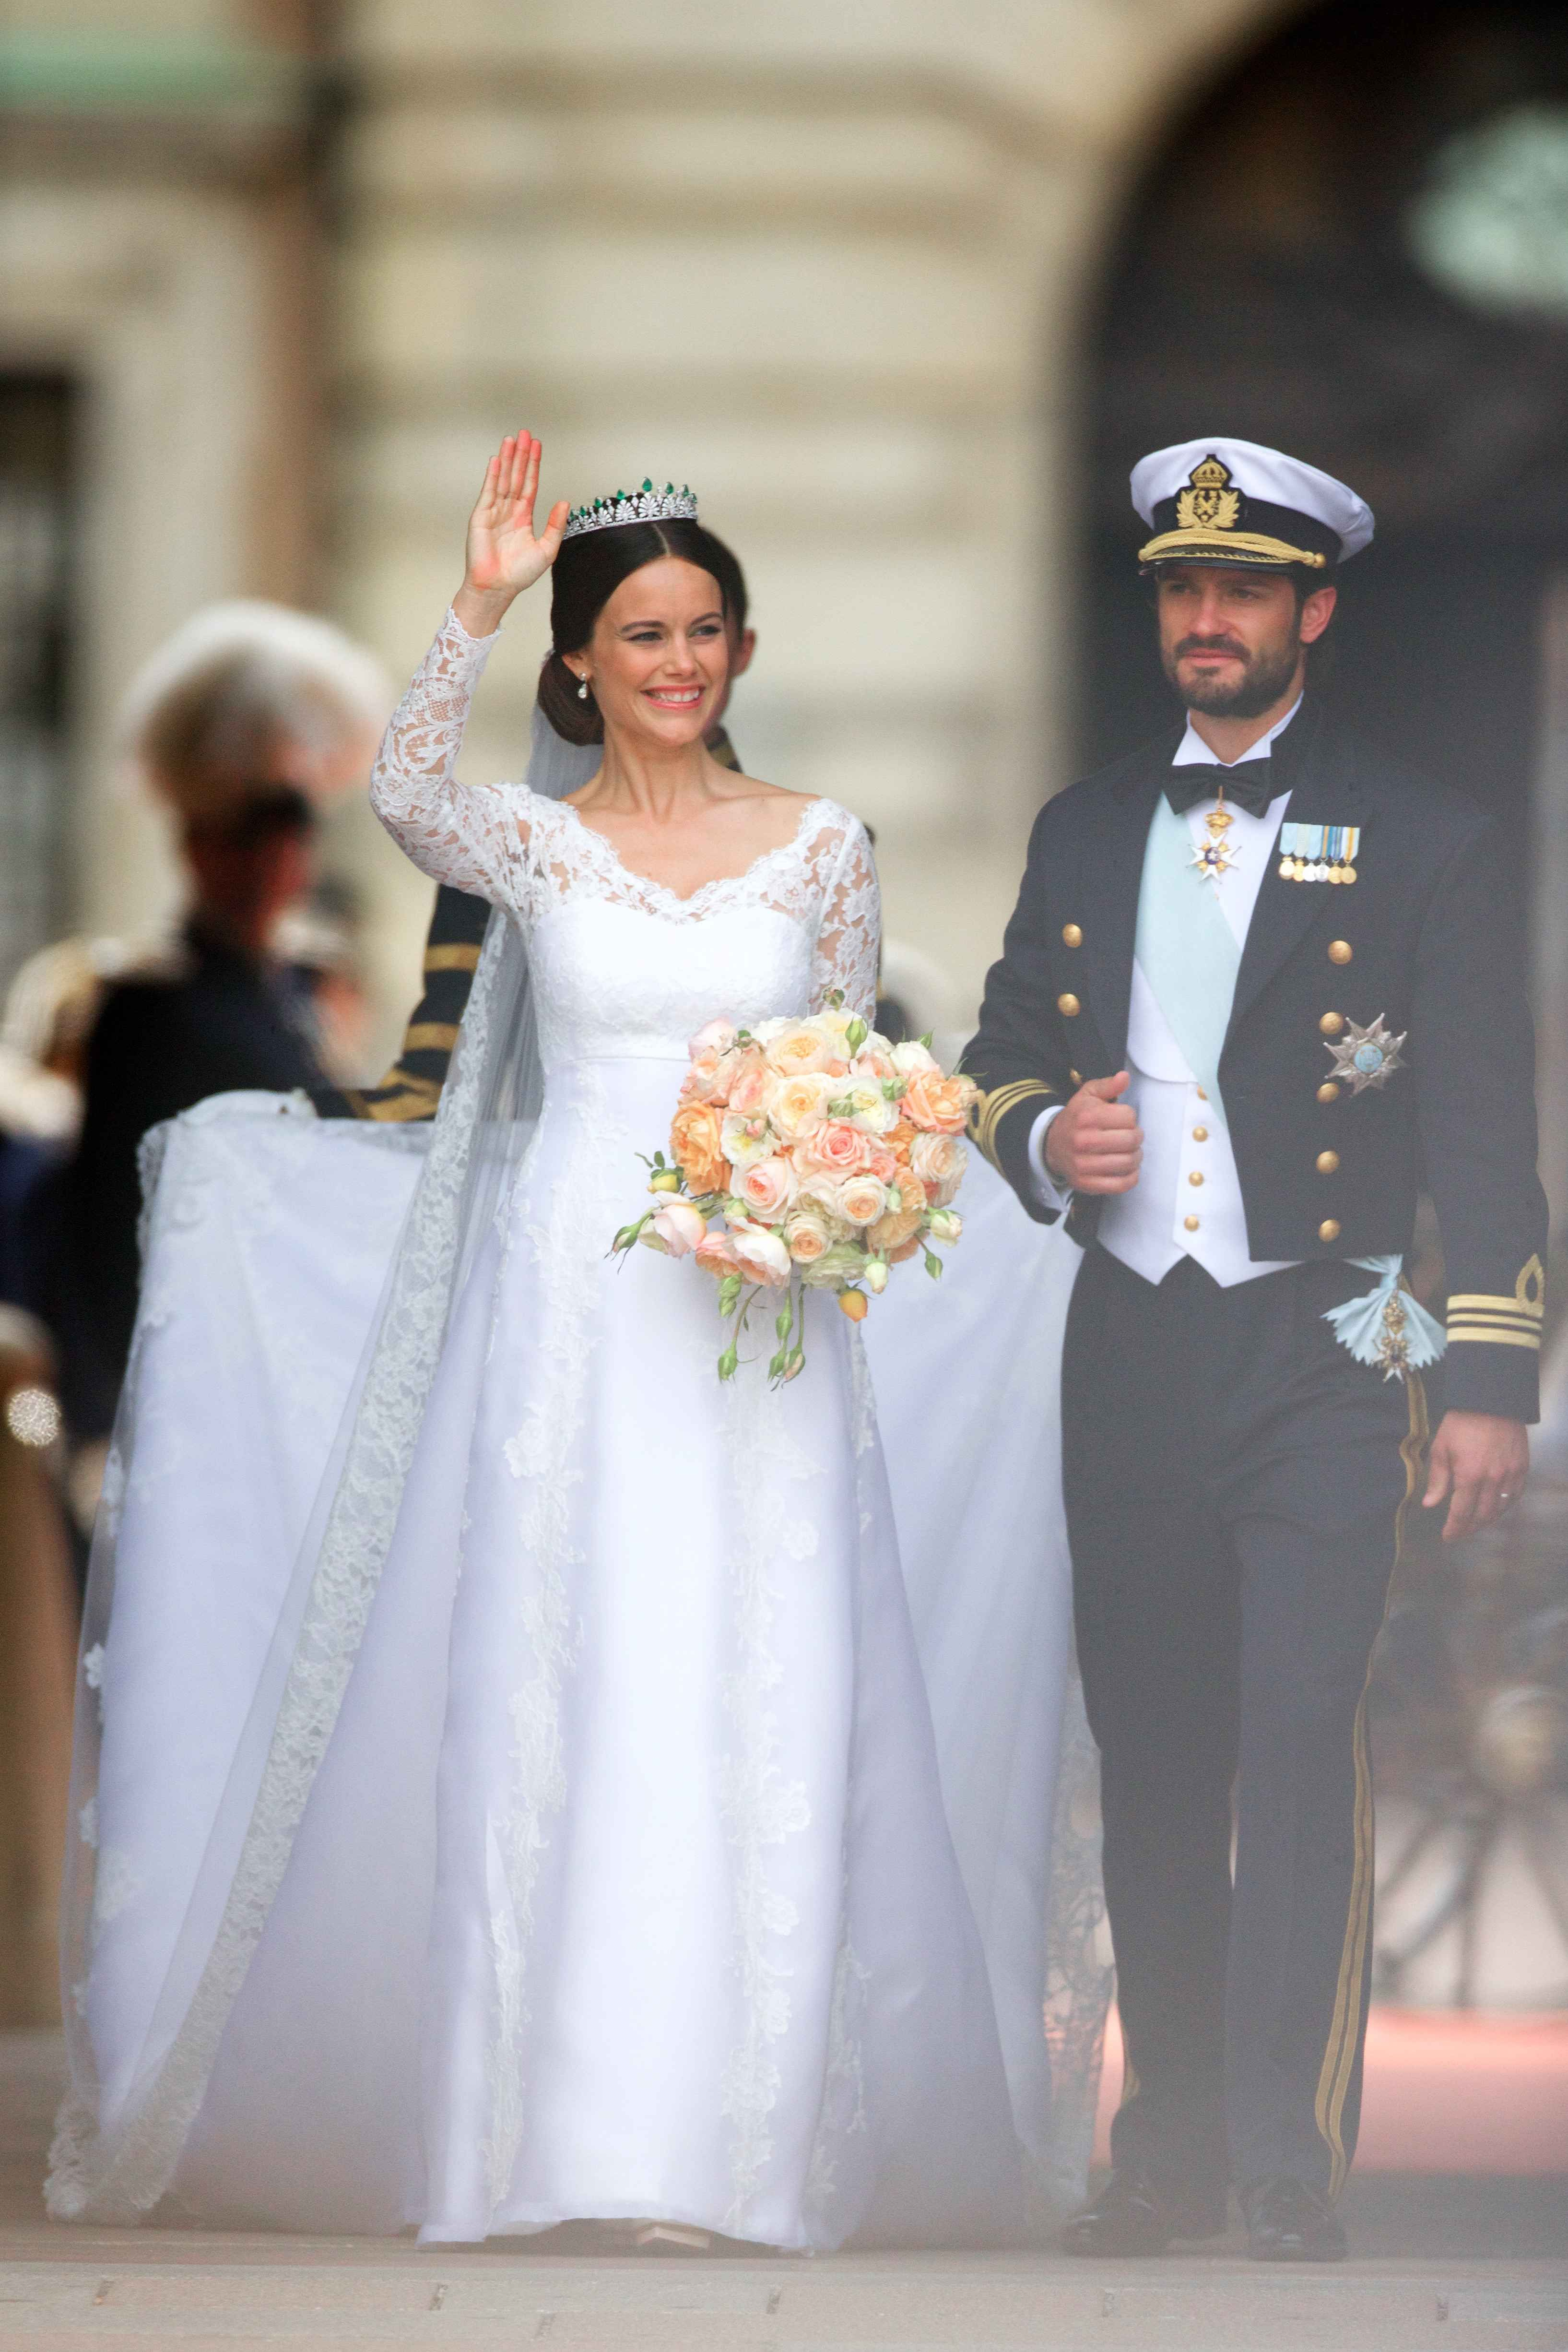 Sofia Hellqvist Weds Sweden S Prince Carl In A Gorgeous Long Sleeved Gown Royal Wedding Dress Princess Sofia Of Sweden Famous Wedding Dresses [ 4902 x 3269 Pixel ]